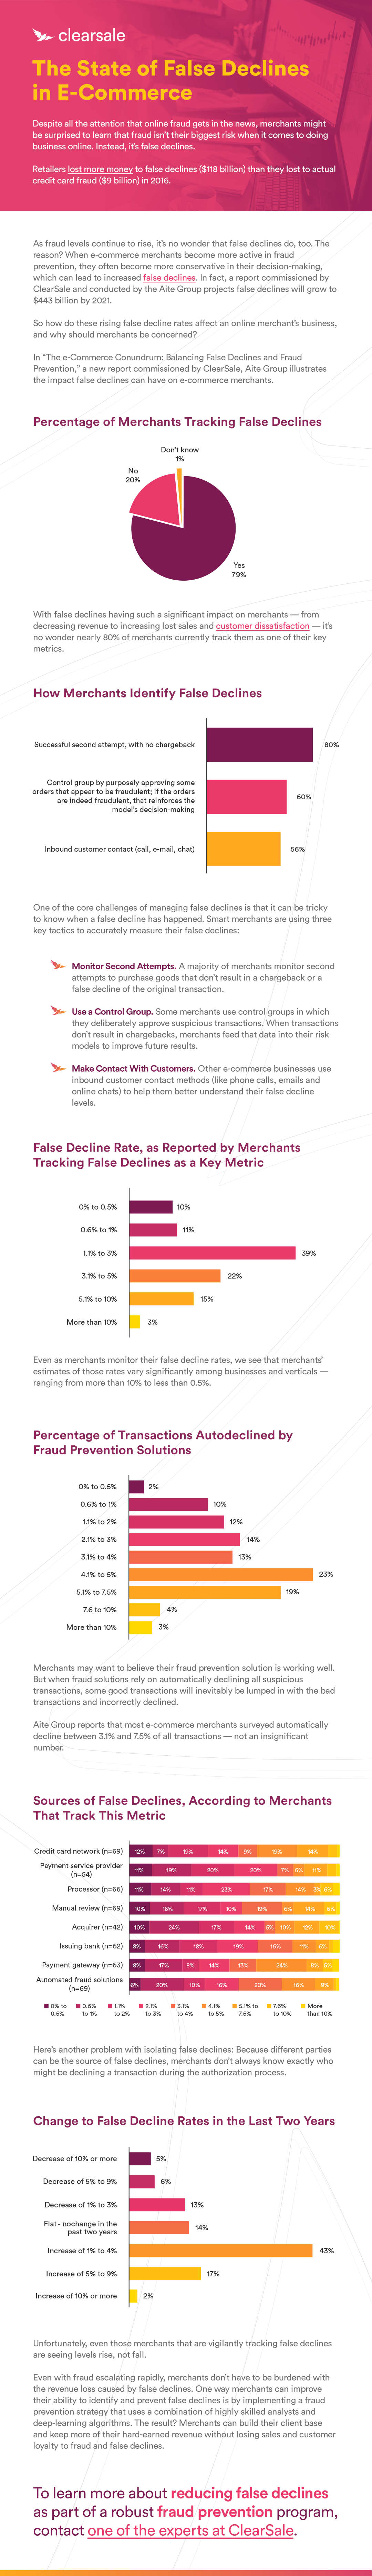 Infographic_-_The_State_of_False_Declines_in_E-Commerce_v1